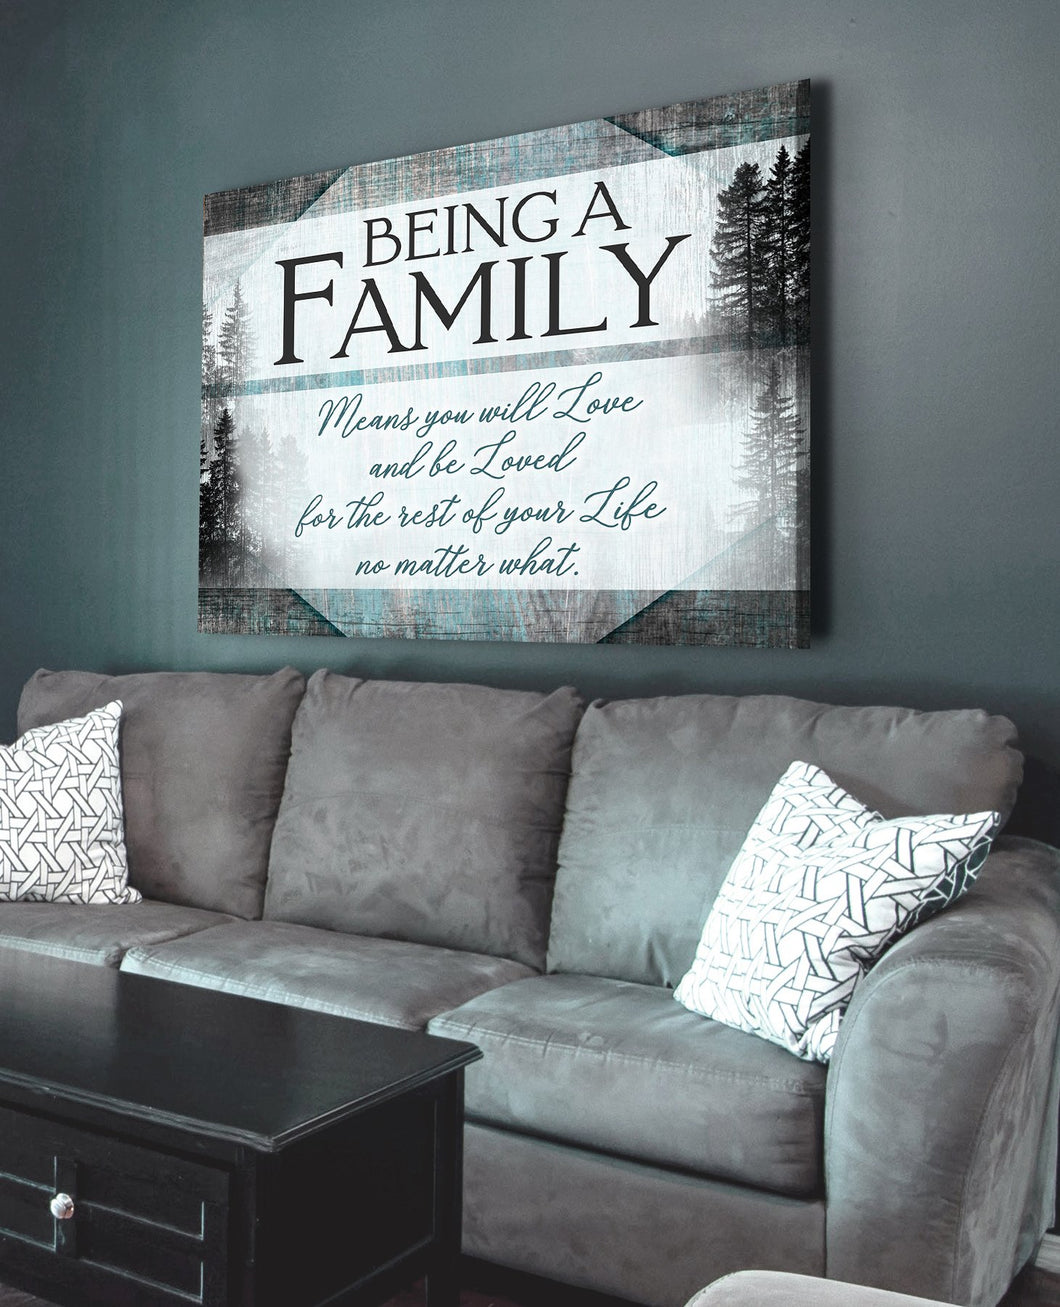 Family Canvas - Being A Family Means You Will Love And Be Loved - Home Decor - Gift for family, friends